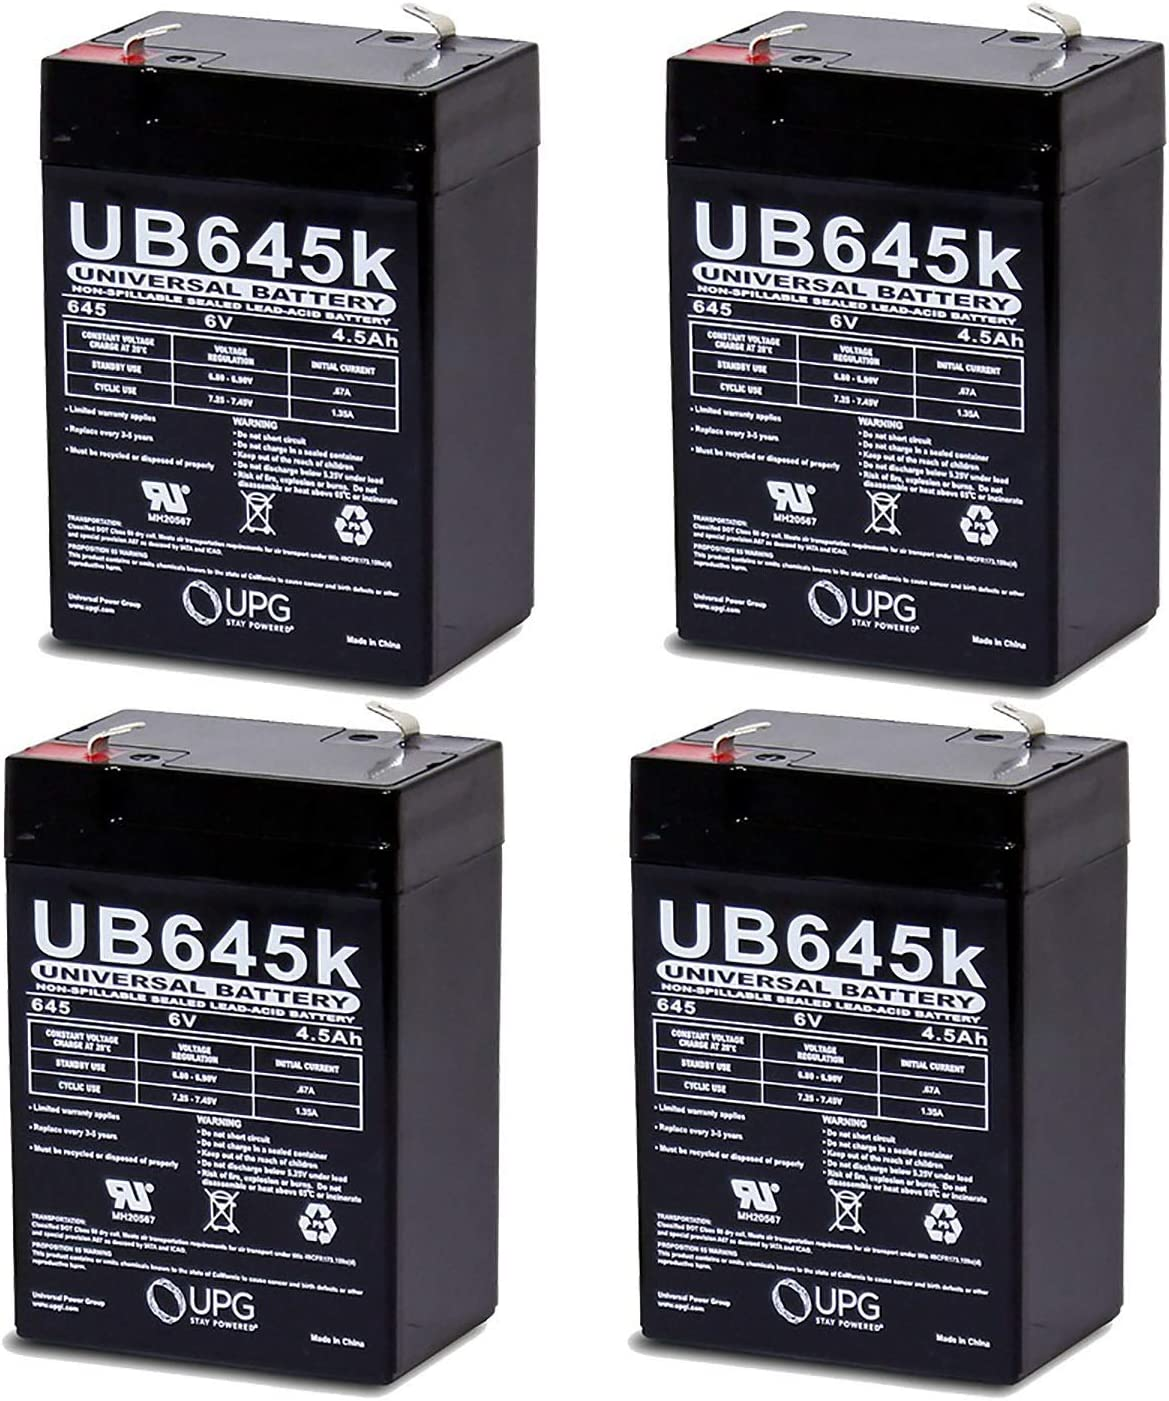 Universal Power Group 6V 5% OFF OFFicial site 4.5AH SLA Battery Replacement Litho for